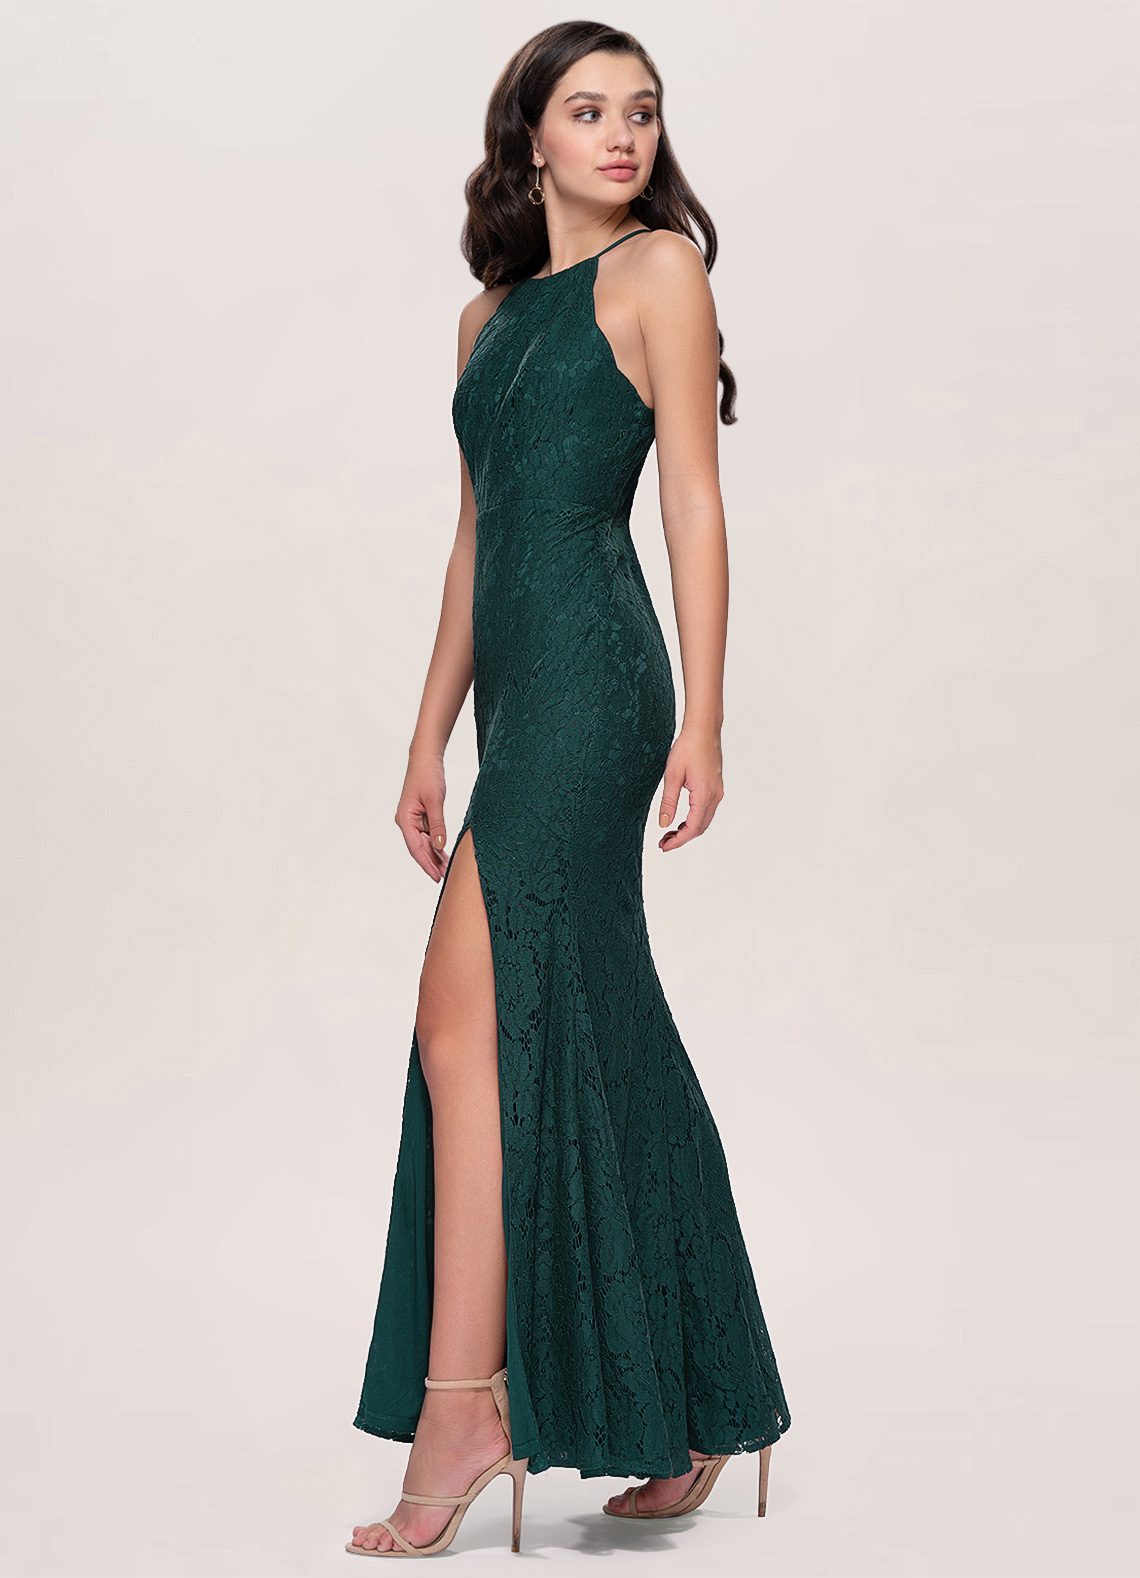 Madmoiselle Dark Green Lace Maxi Dress